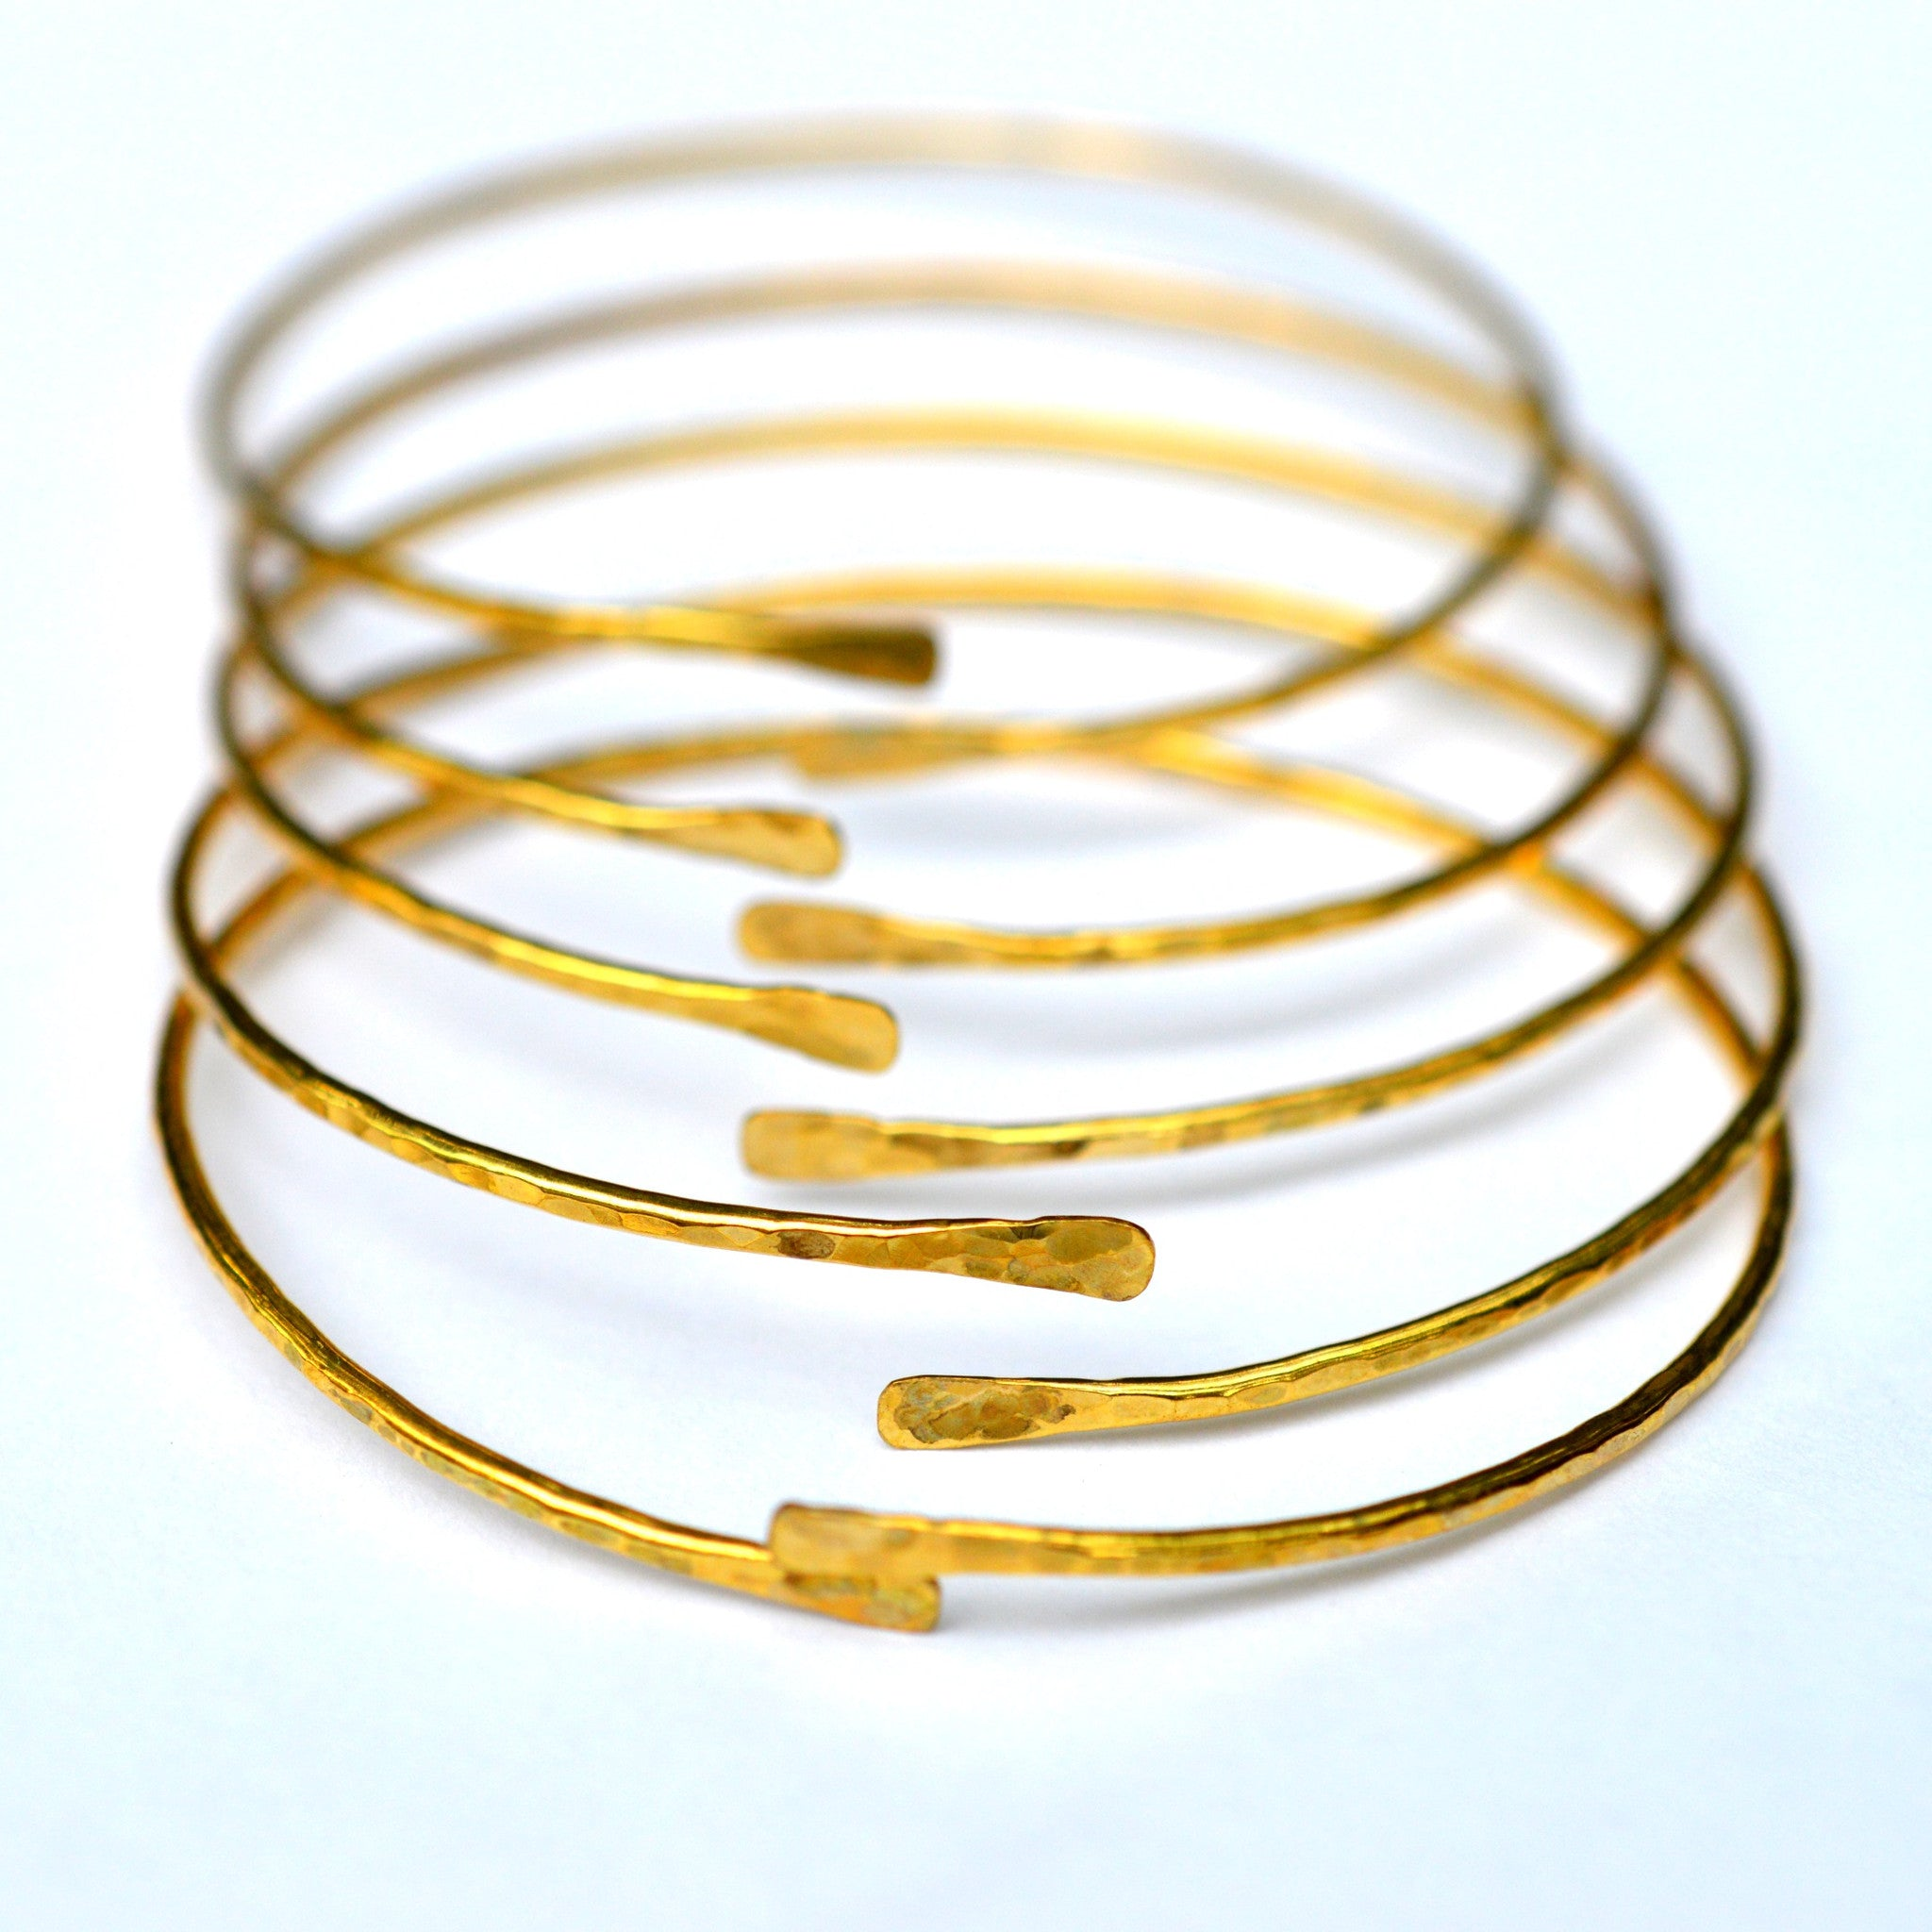 bangles bangle barbell singapore half shop co in minimalist ashley gold cuff jewellery summer